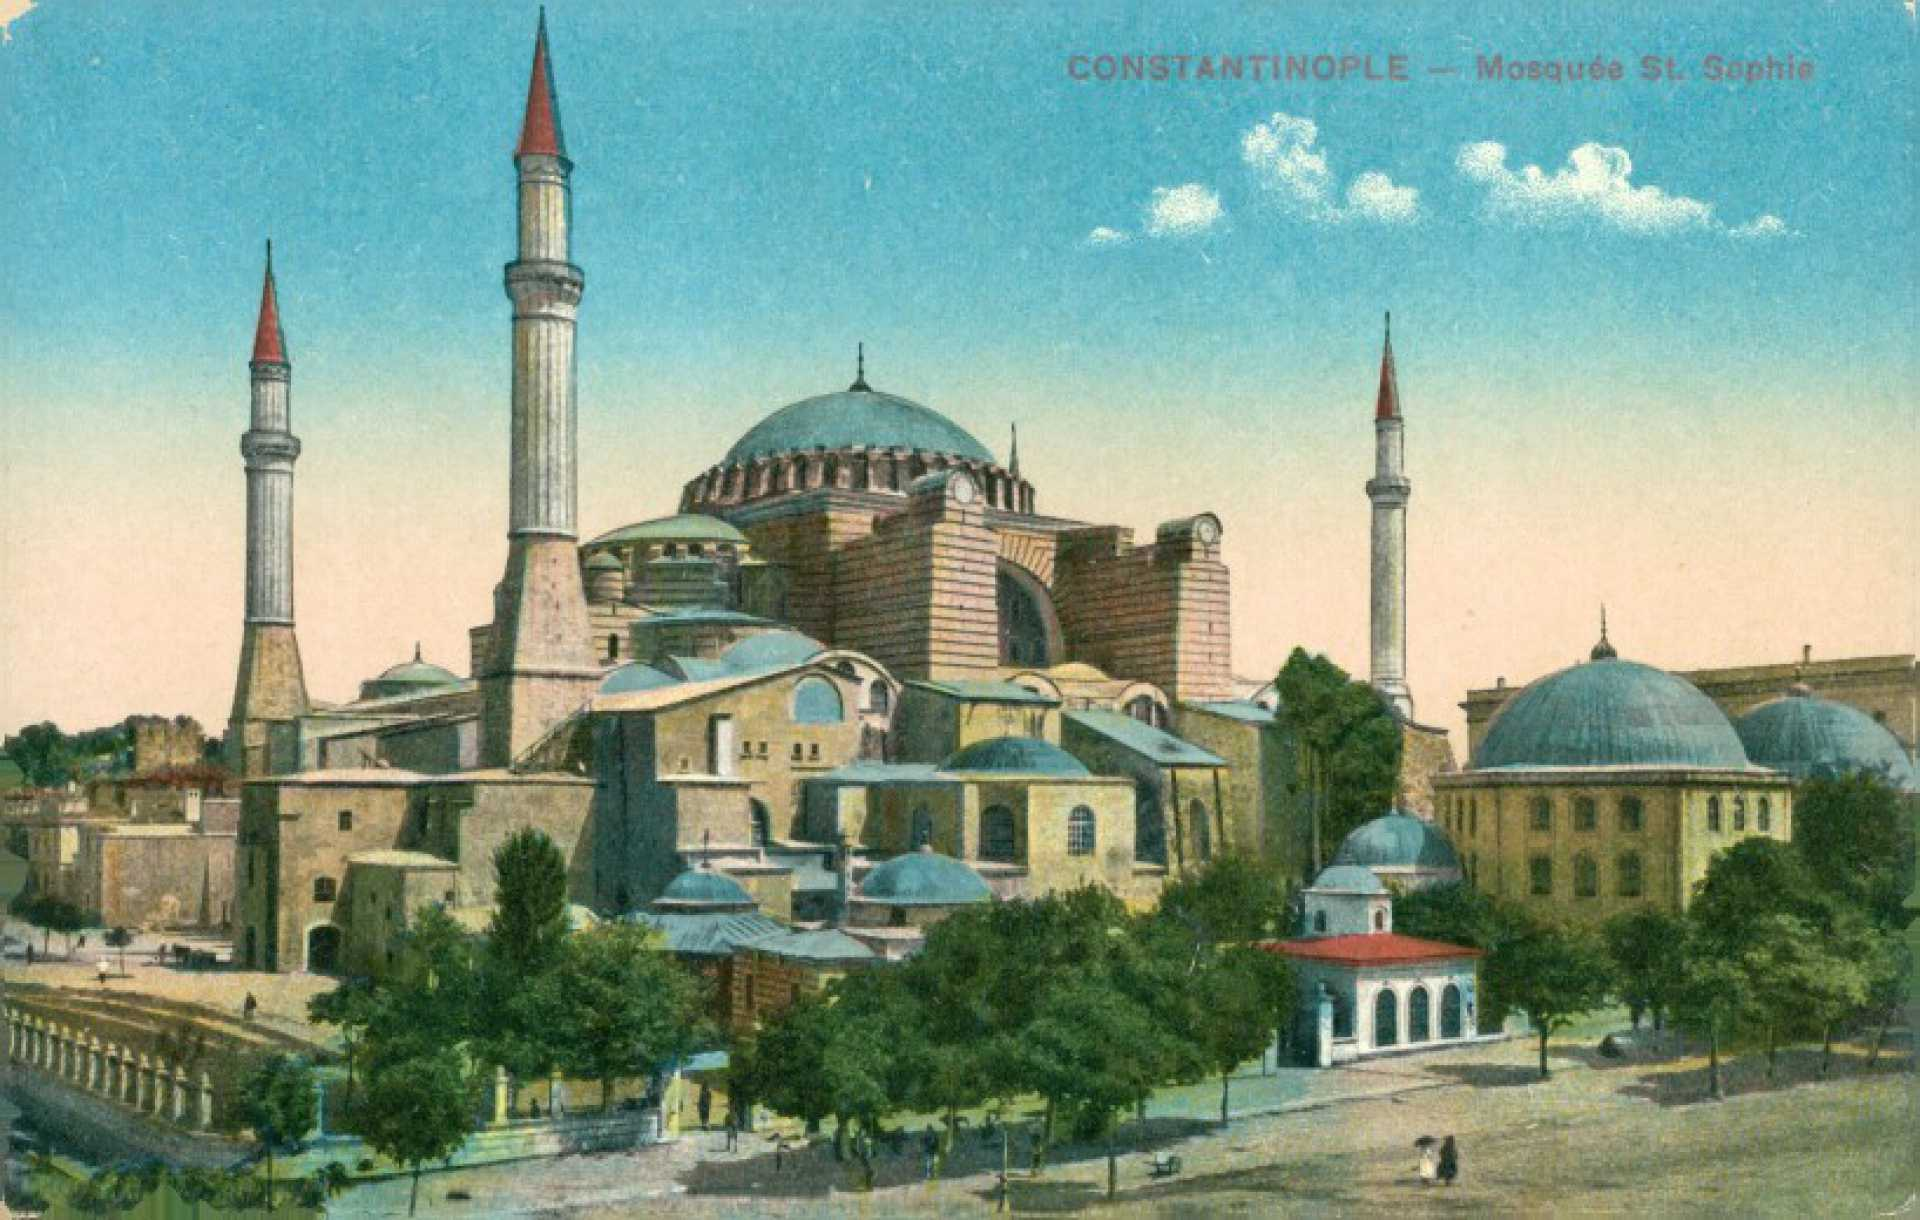 Constantinople – Mosquee St. Sophie